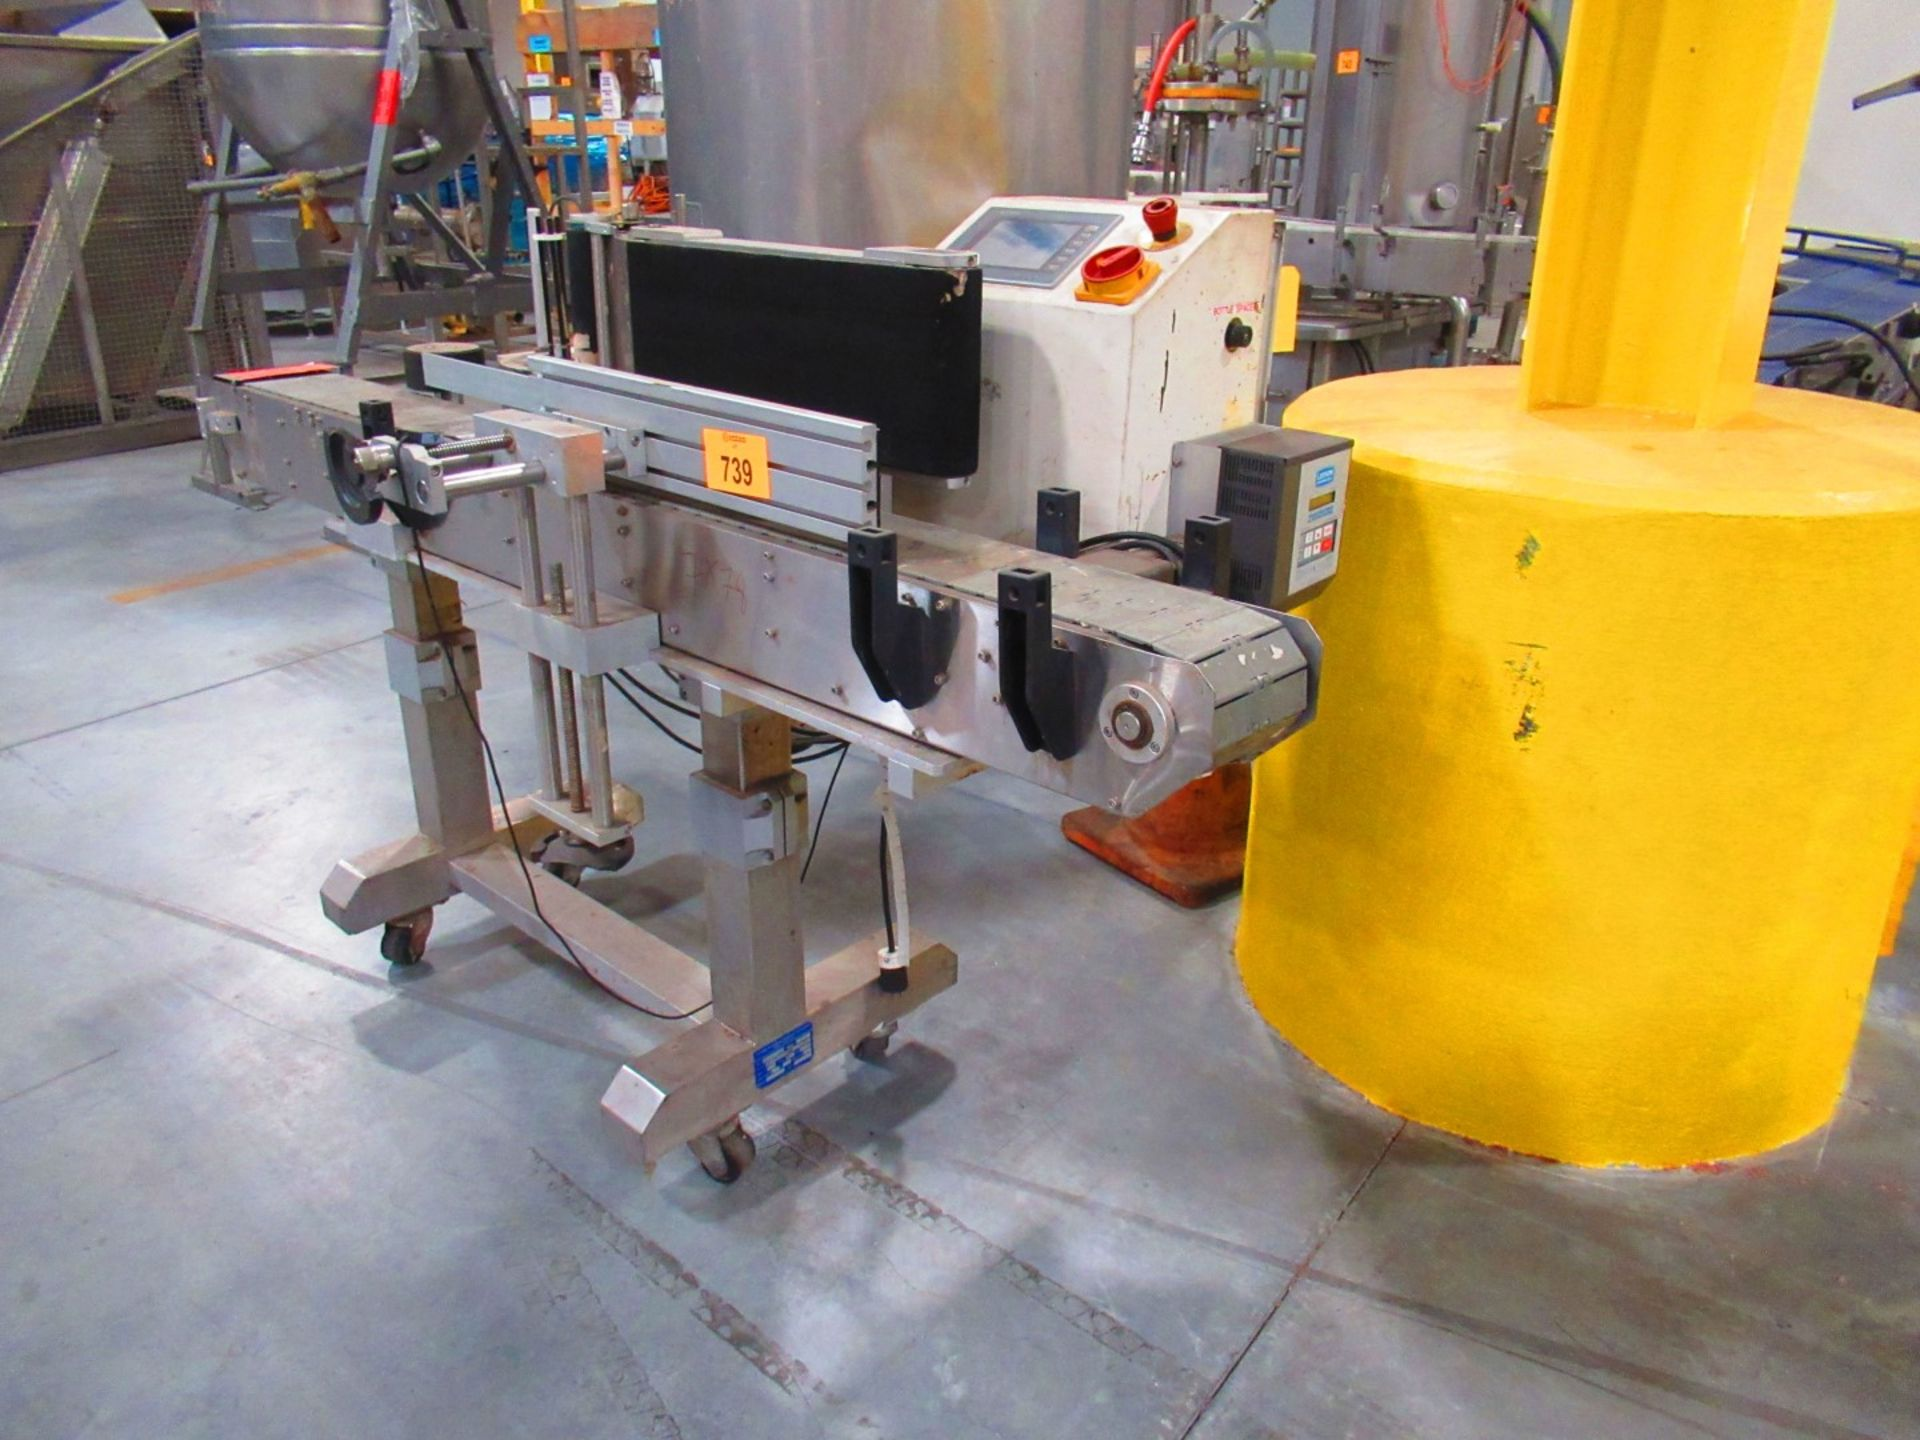 Labeler - Image 3 of 4